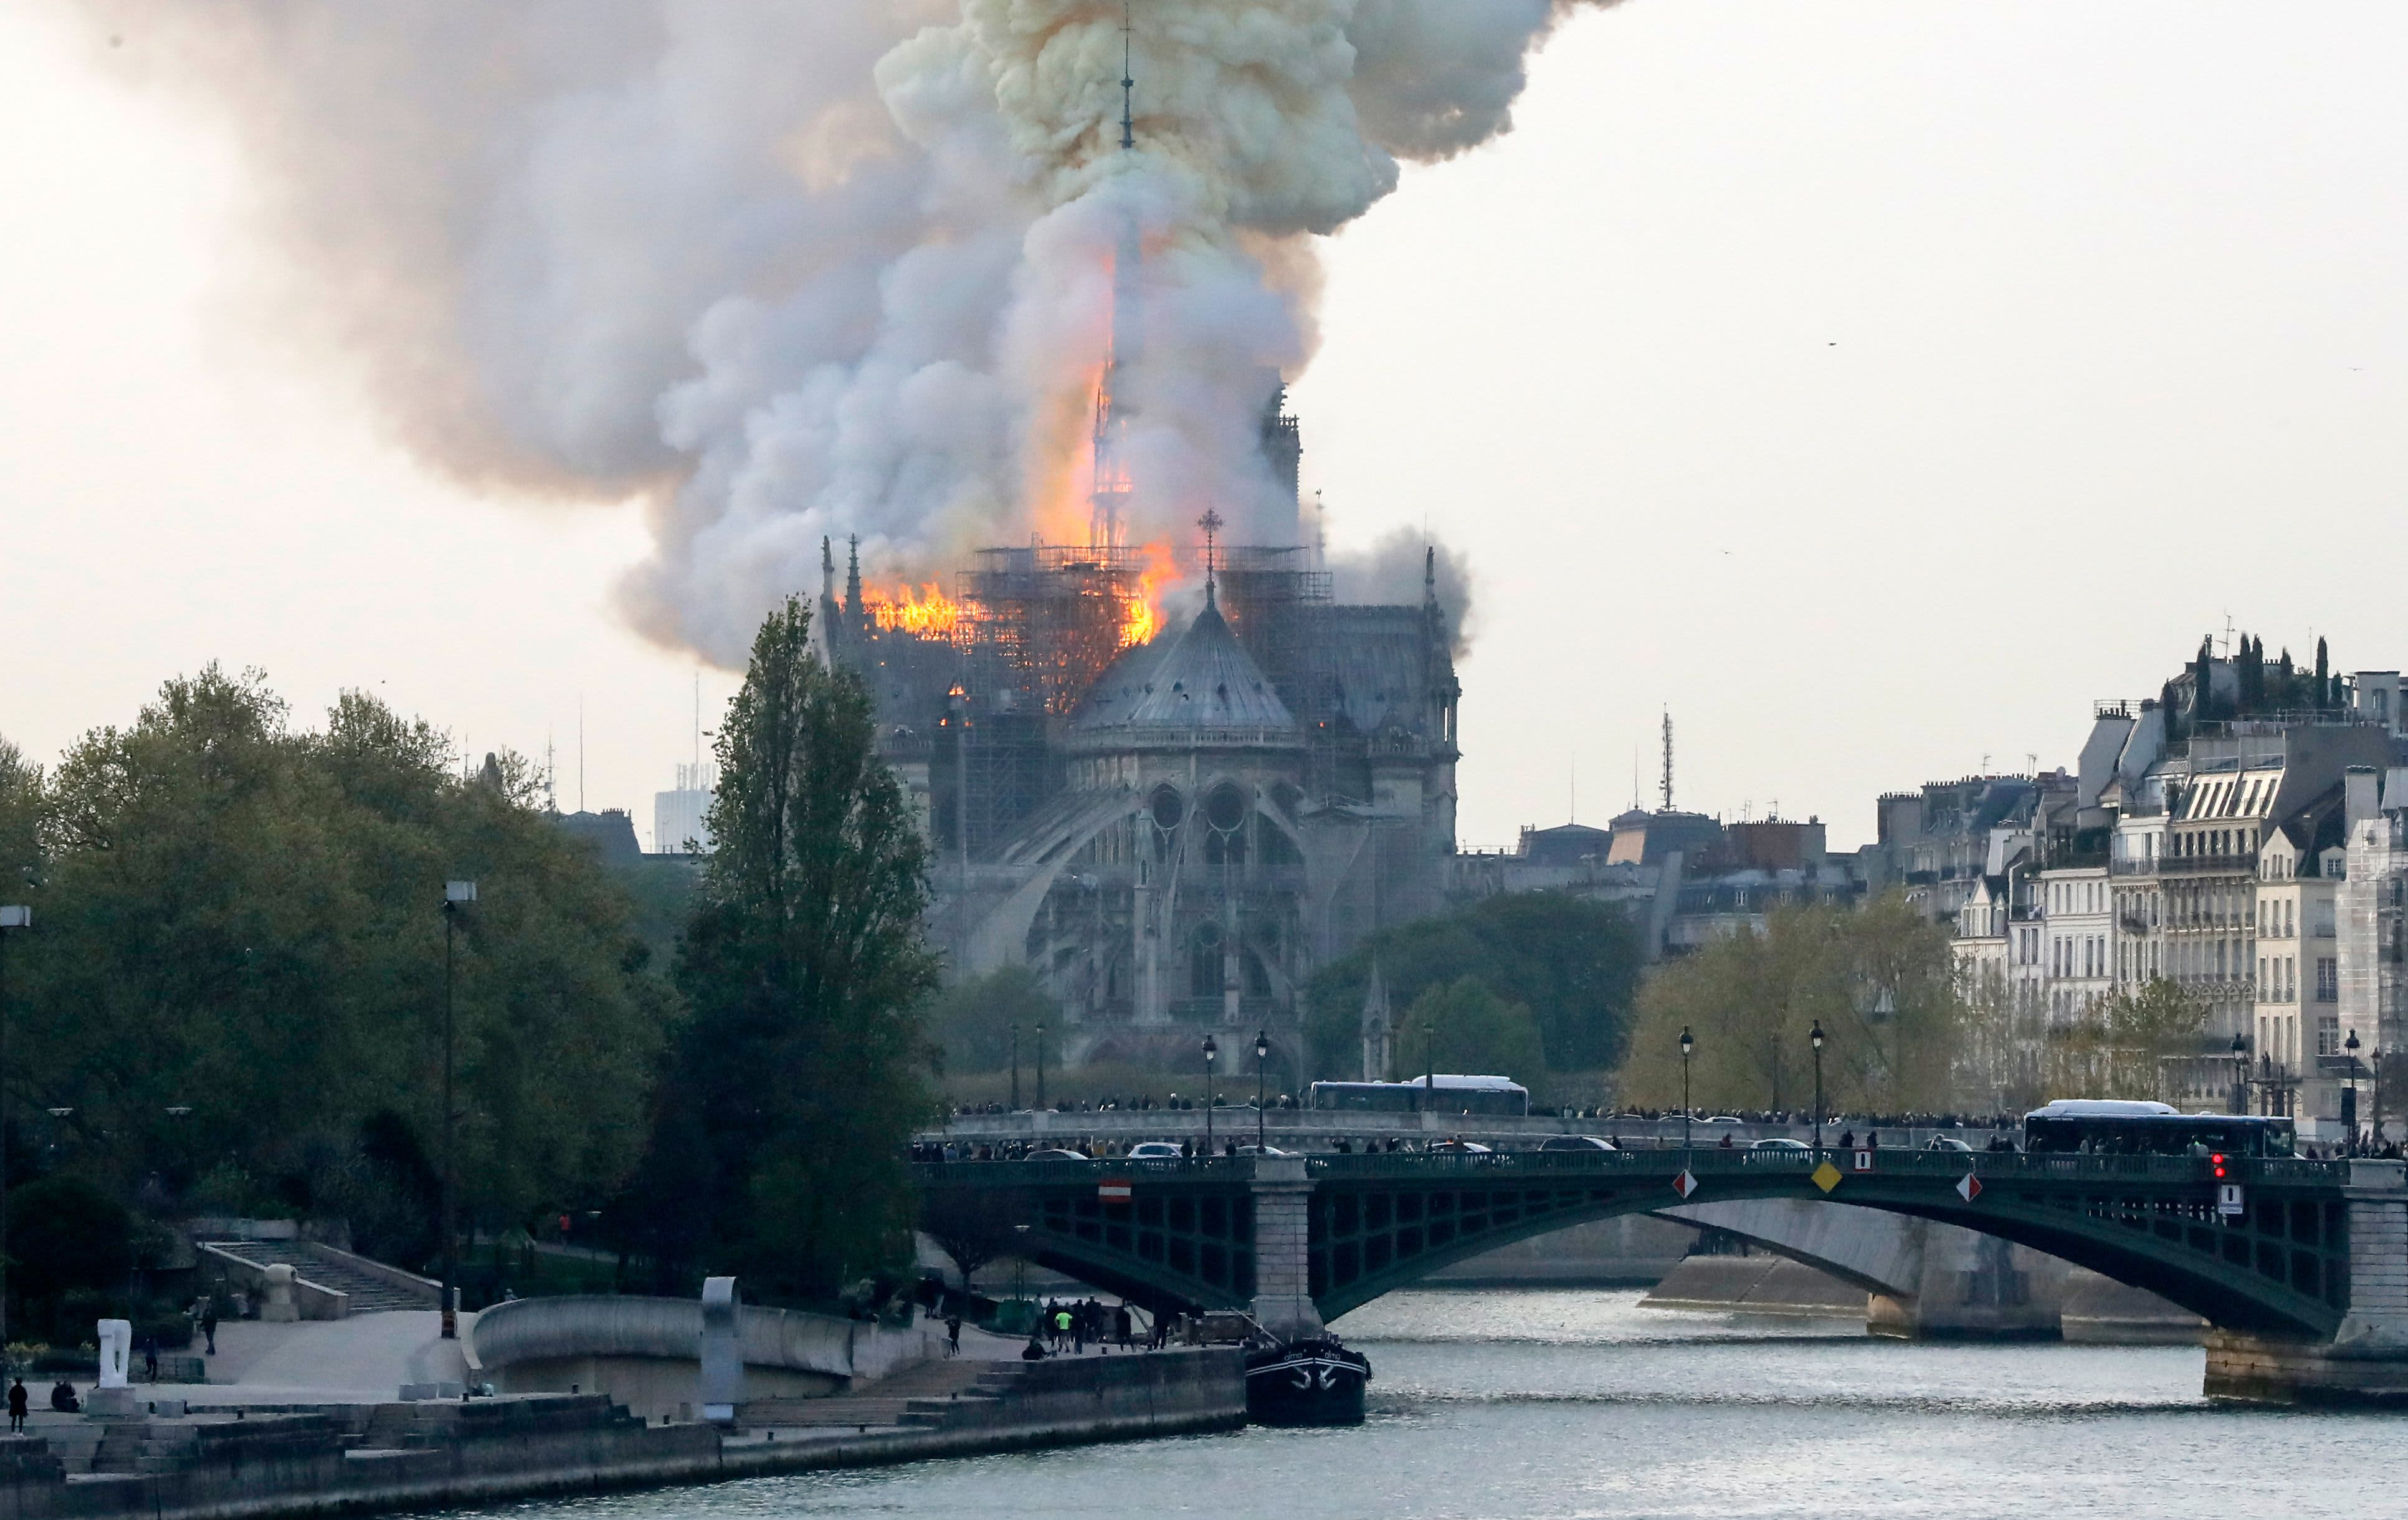 GP: Paris Notre Dame Cathedral on fire 190415